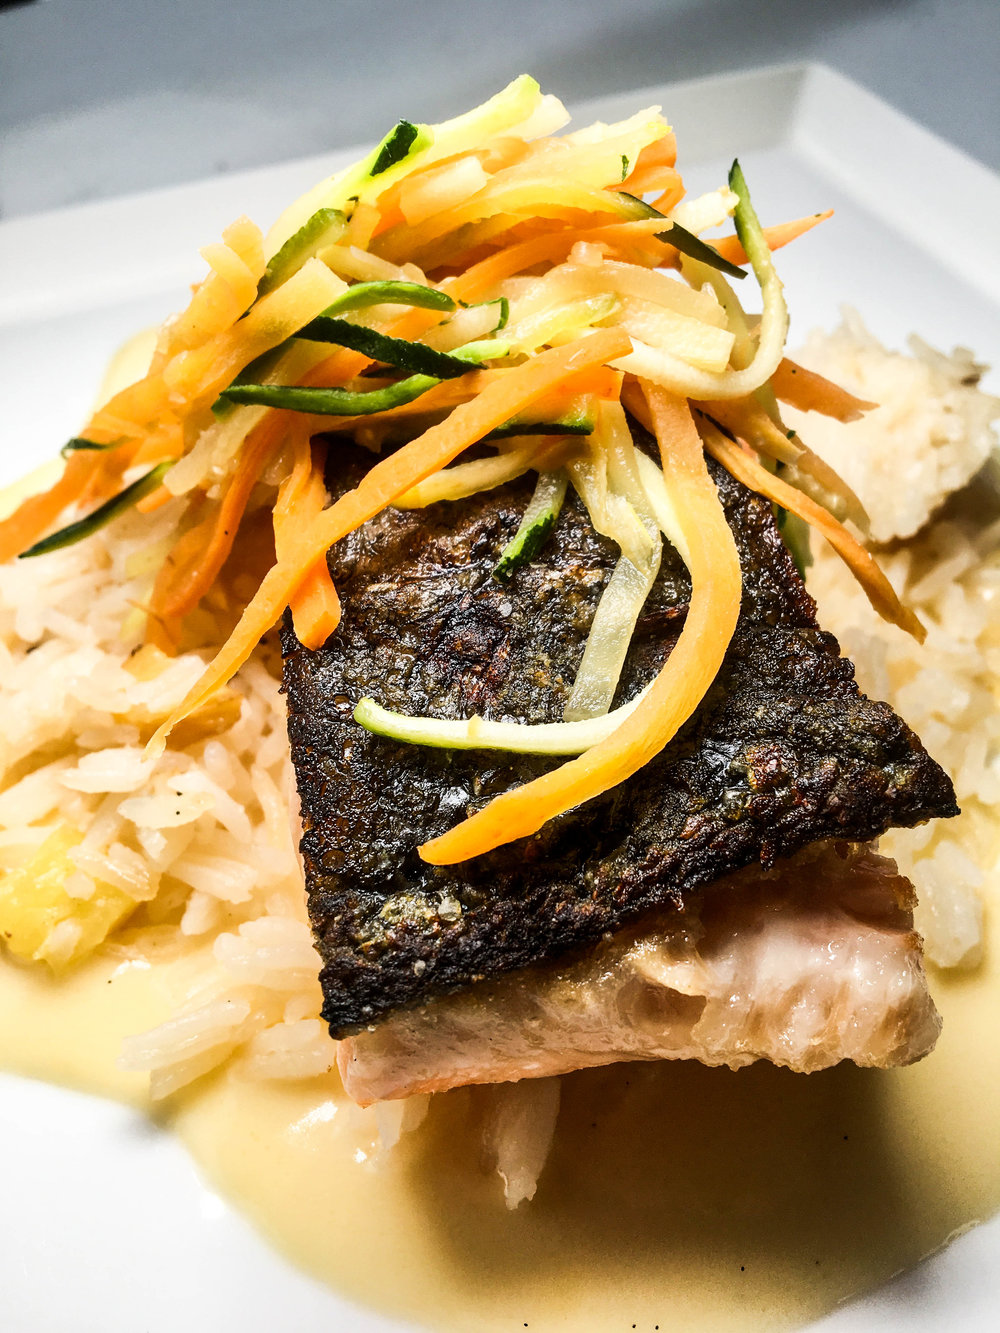 Pan seared salmon with pineapple basmati rice, lotus chips and summer slaw in a white chocolate beurre blanc.